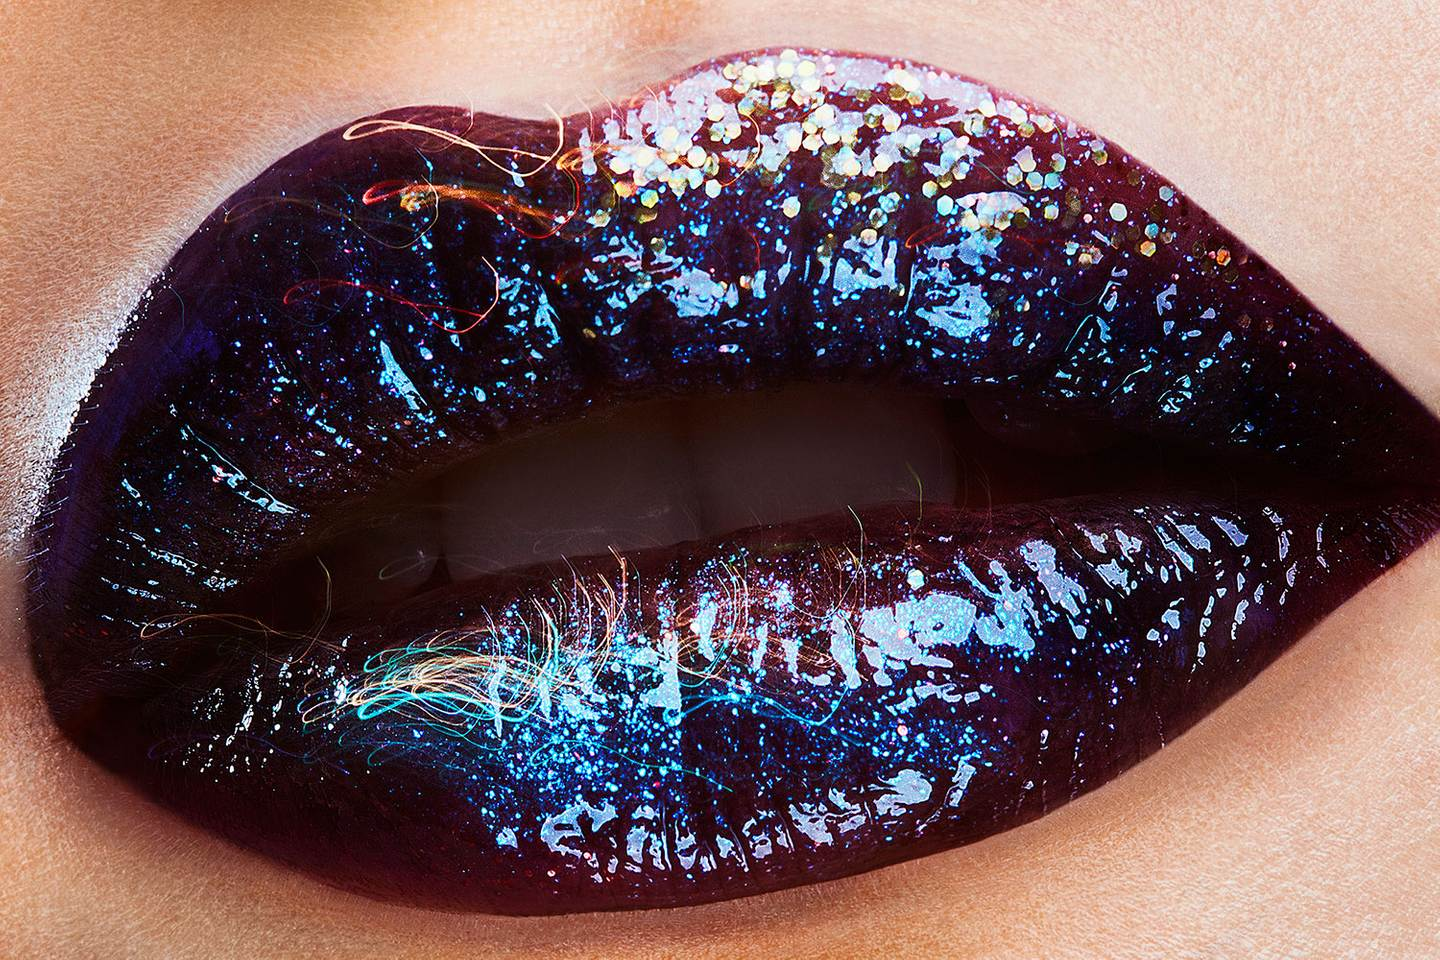 lip image with glittery Urban Decay gloss